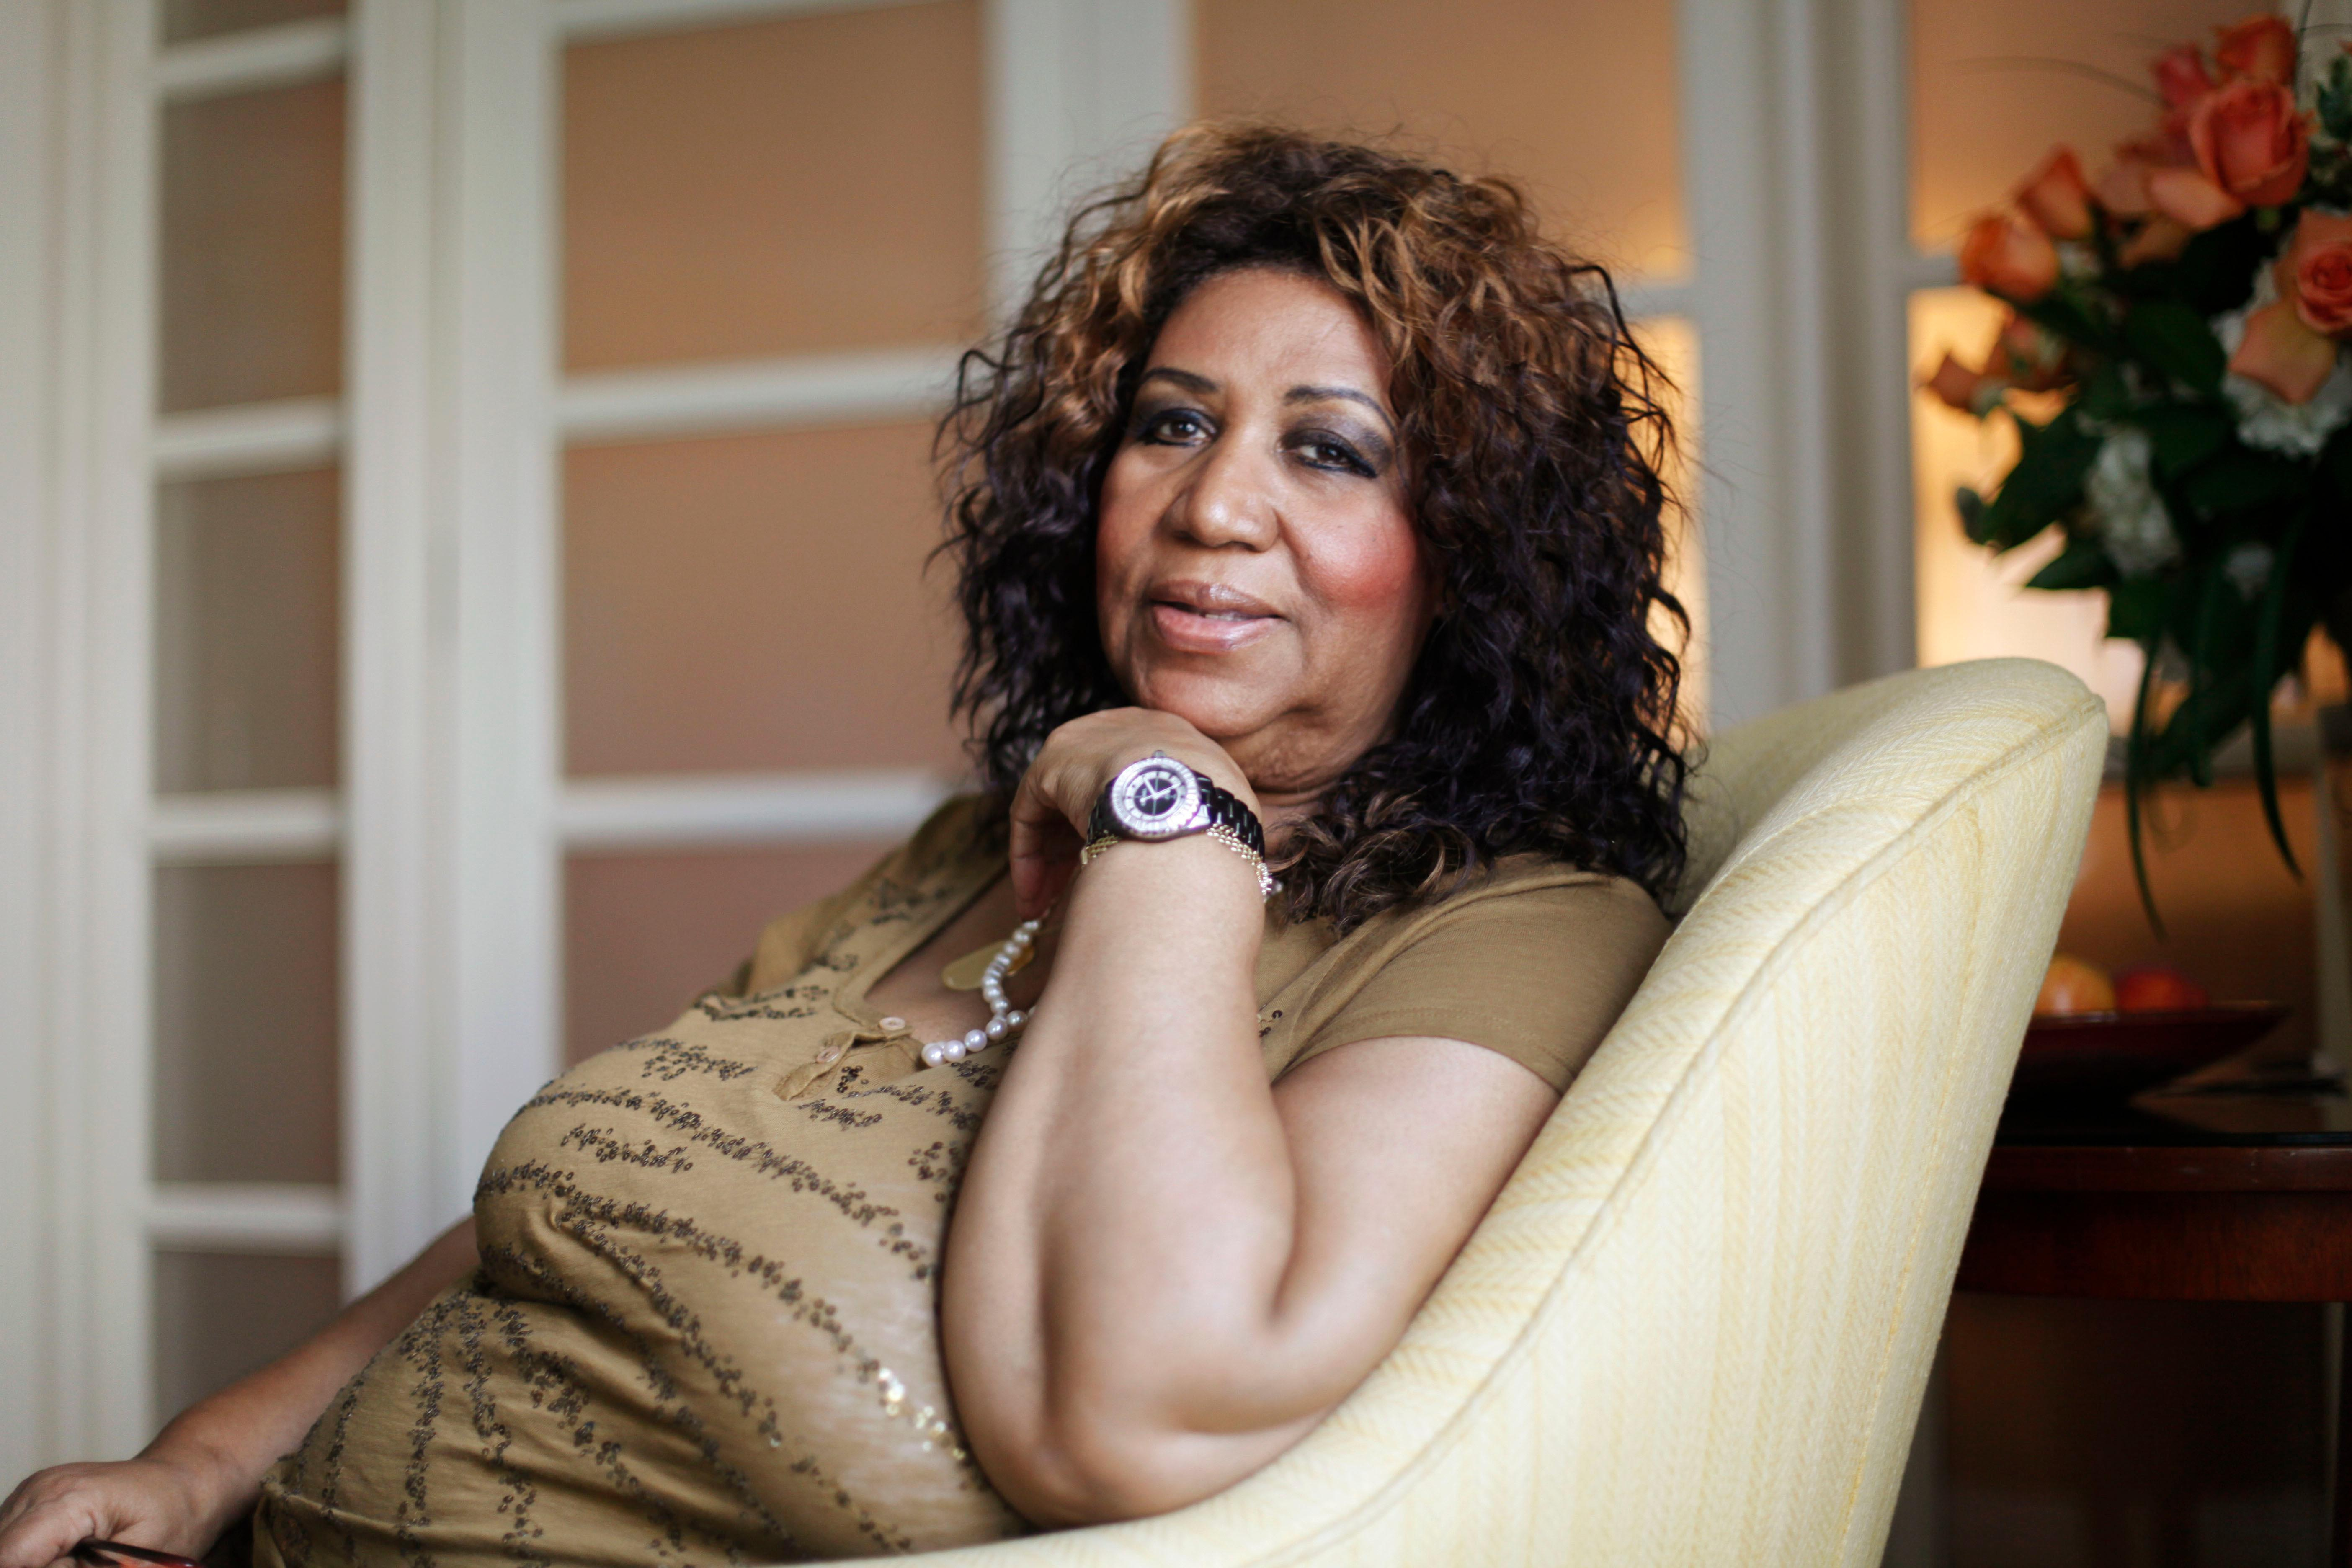 FILE - In this July 26, 2010 file photo, soul singer Aretha Franklin poses for a portrait in Philadelphia. Franklin died Thursday, Aug. 16, 2018 at her home in Detroit.  She was 76. (AP Photo/Matt Rourke, File)